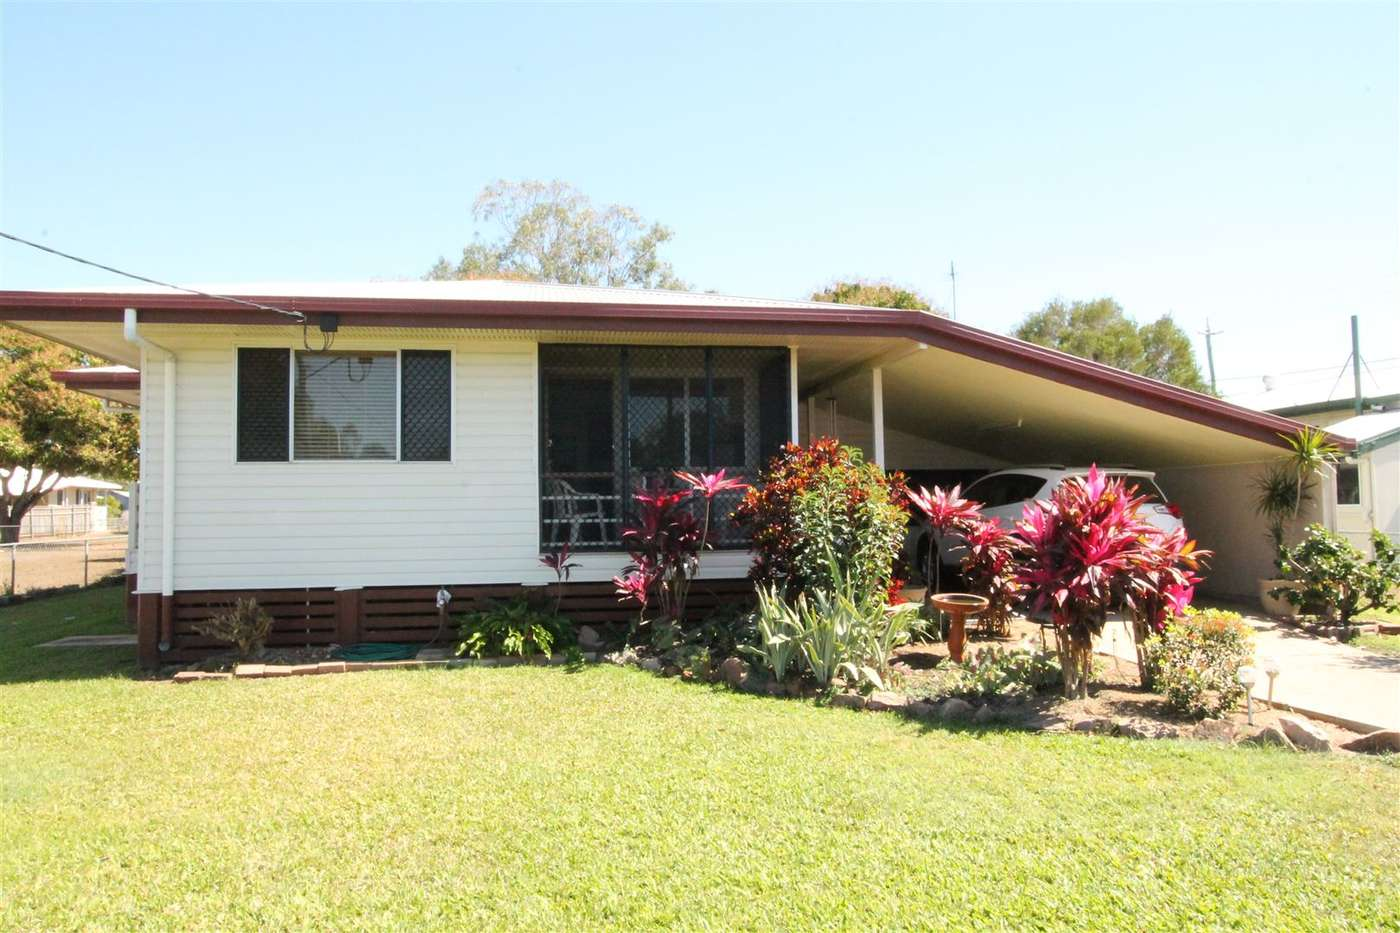 Main view of Homely house listing, 3 Charlotte Street, Ayr, QLD 4807